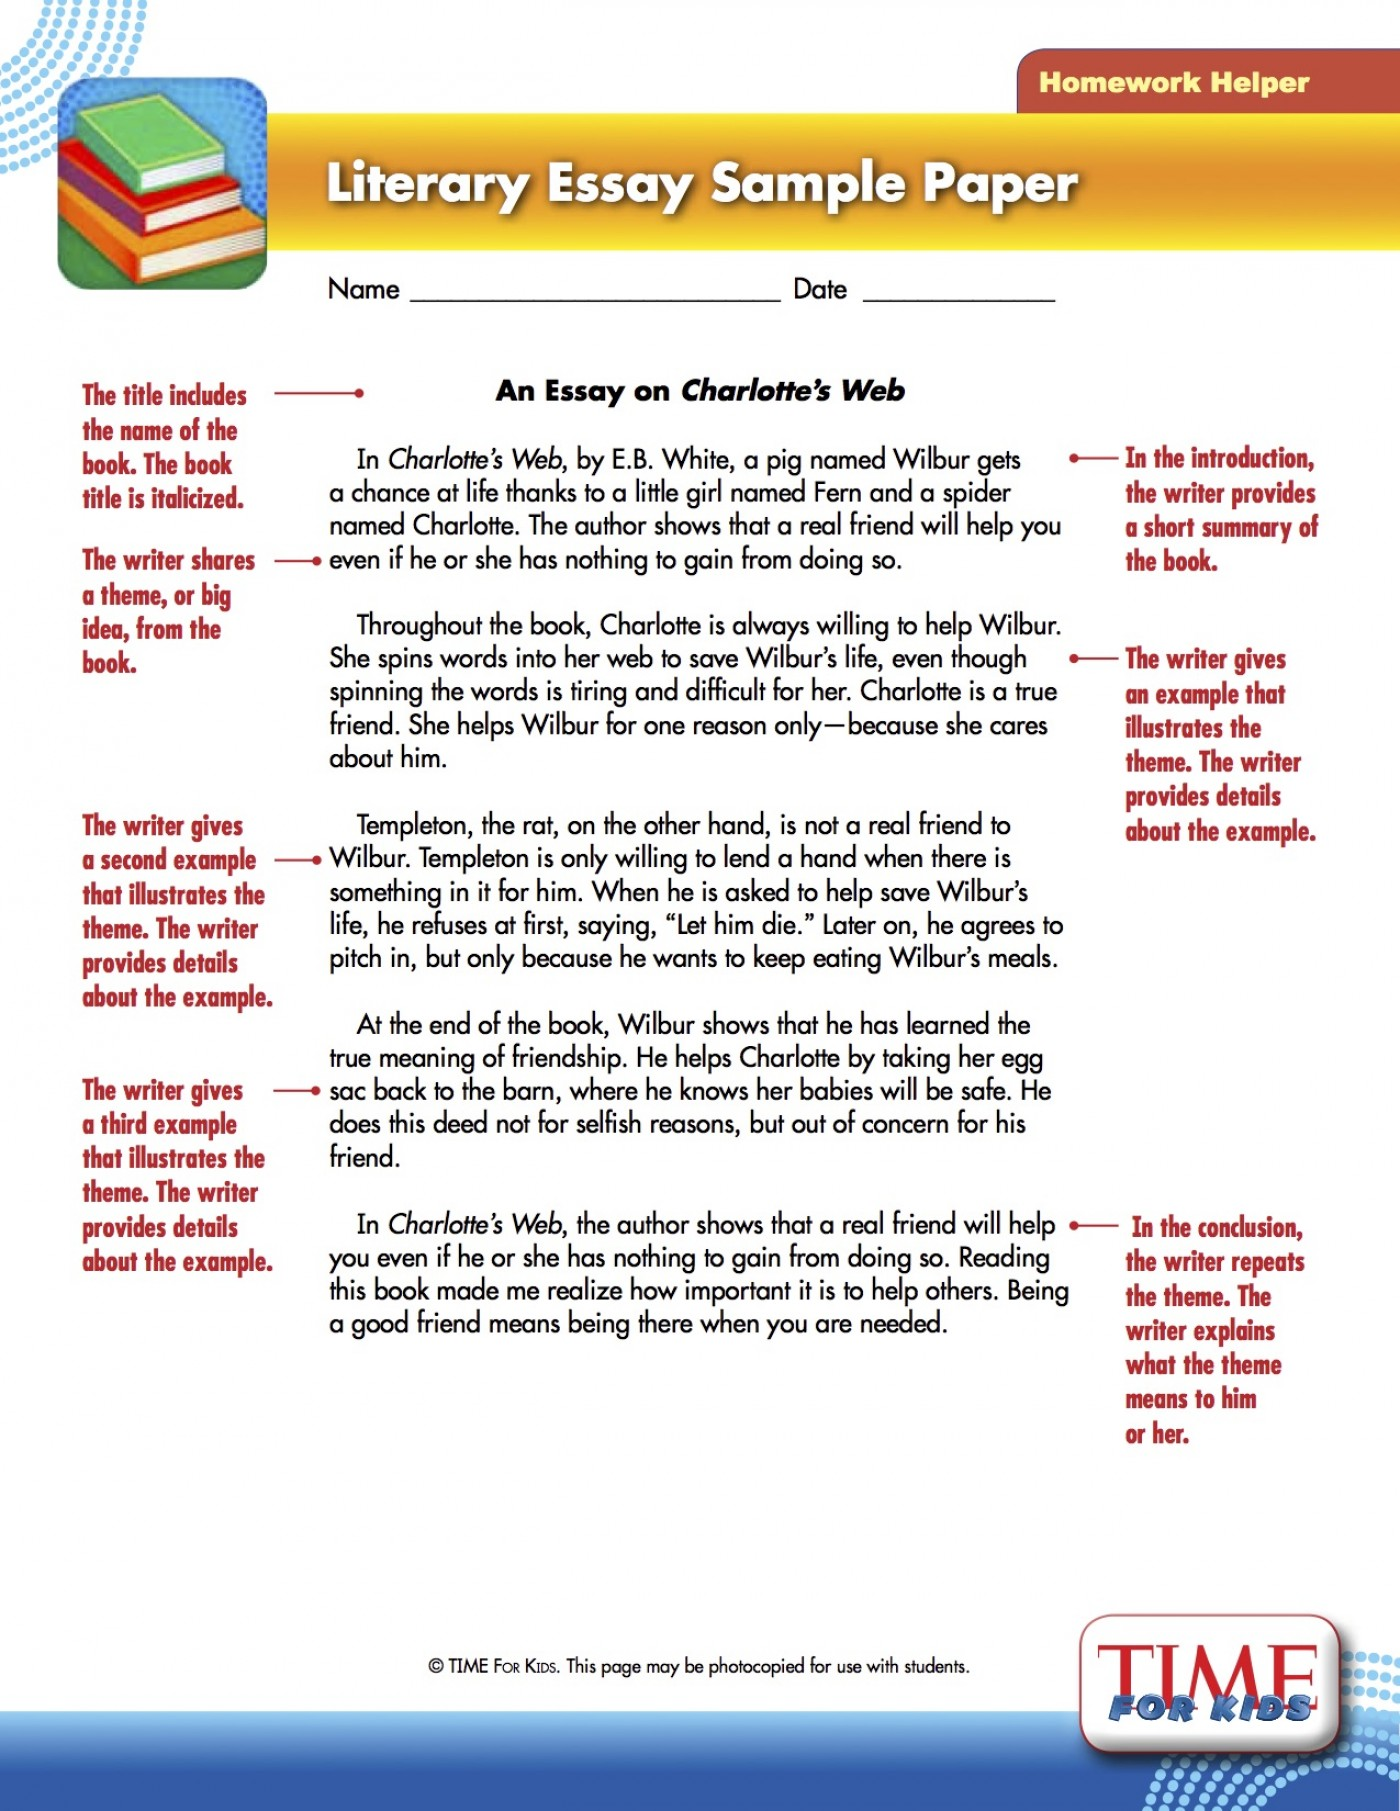 022 Literaryessaysampler 1svmyul How To Write Literary Essay Formidable A Good English Literature Introduction Conclusion Grade 4 1400